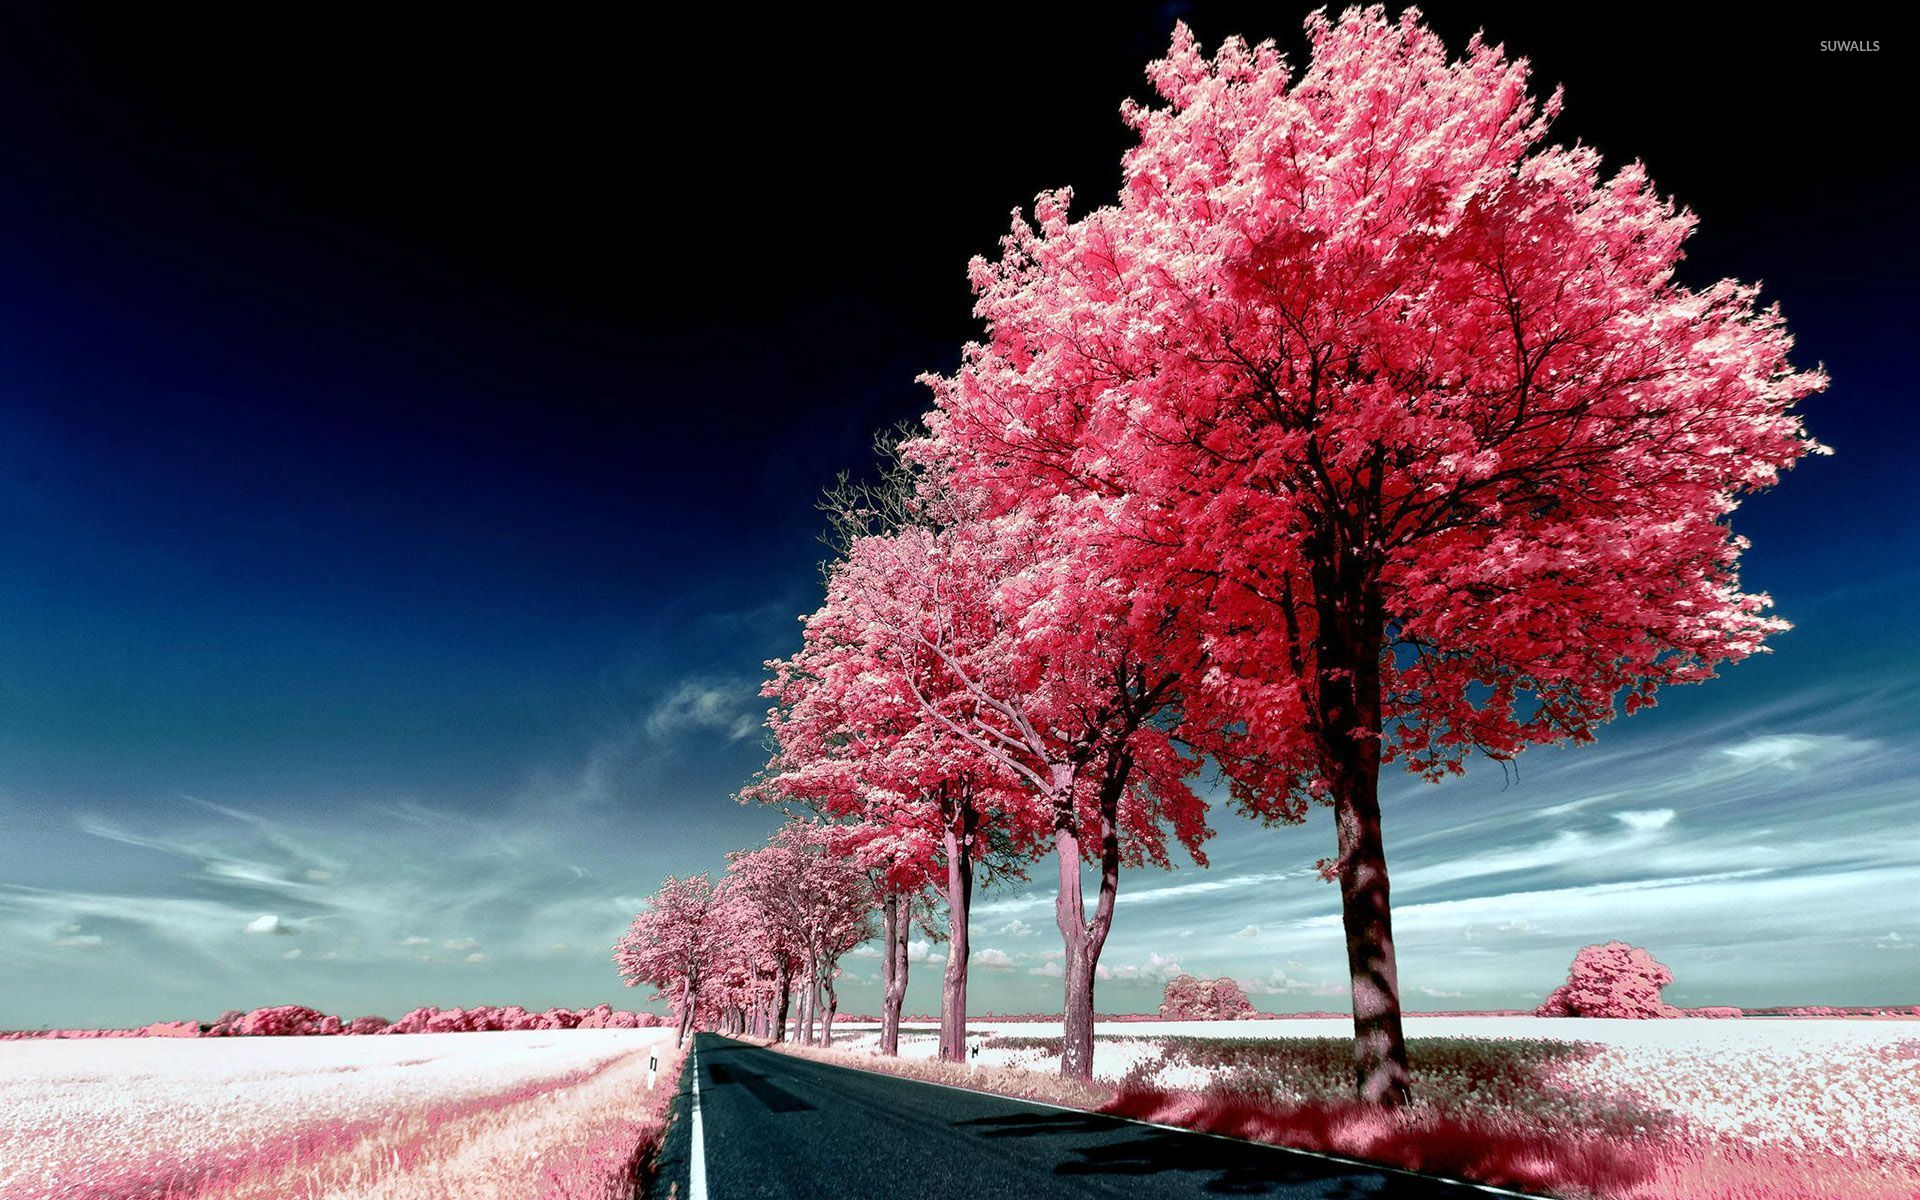 Roadside pink trees wallpaper   Nature wallpapers   29447 1920x1200